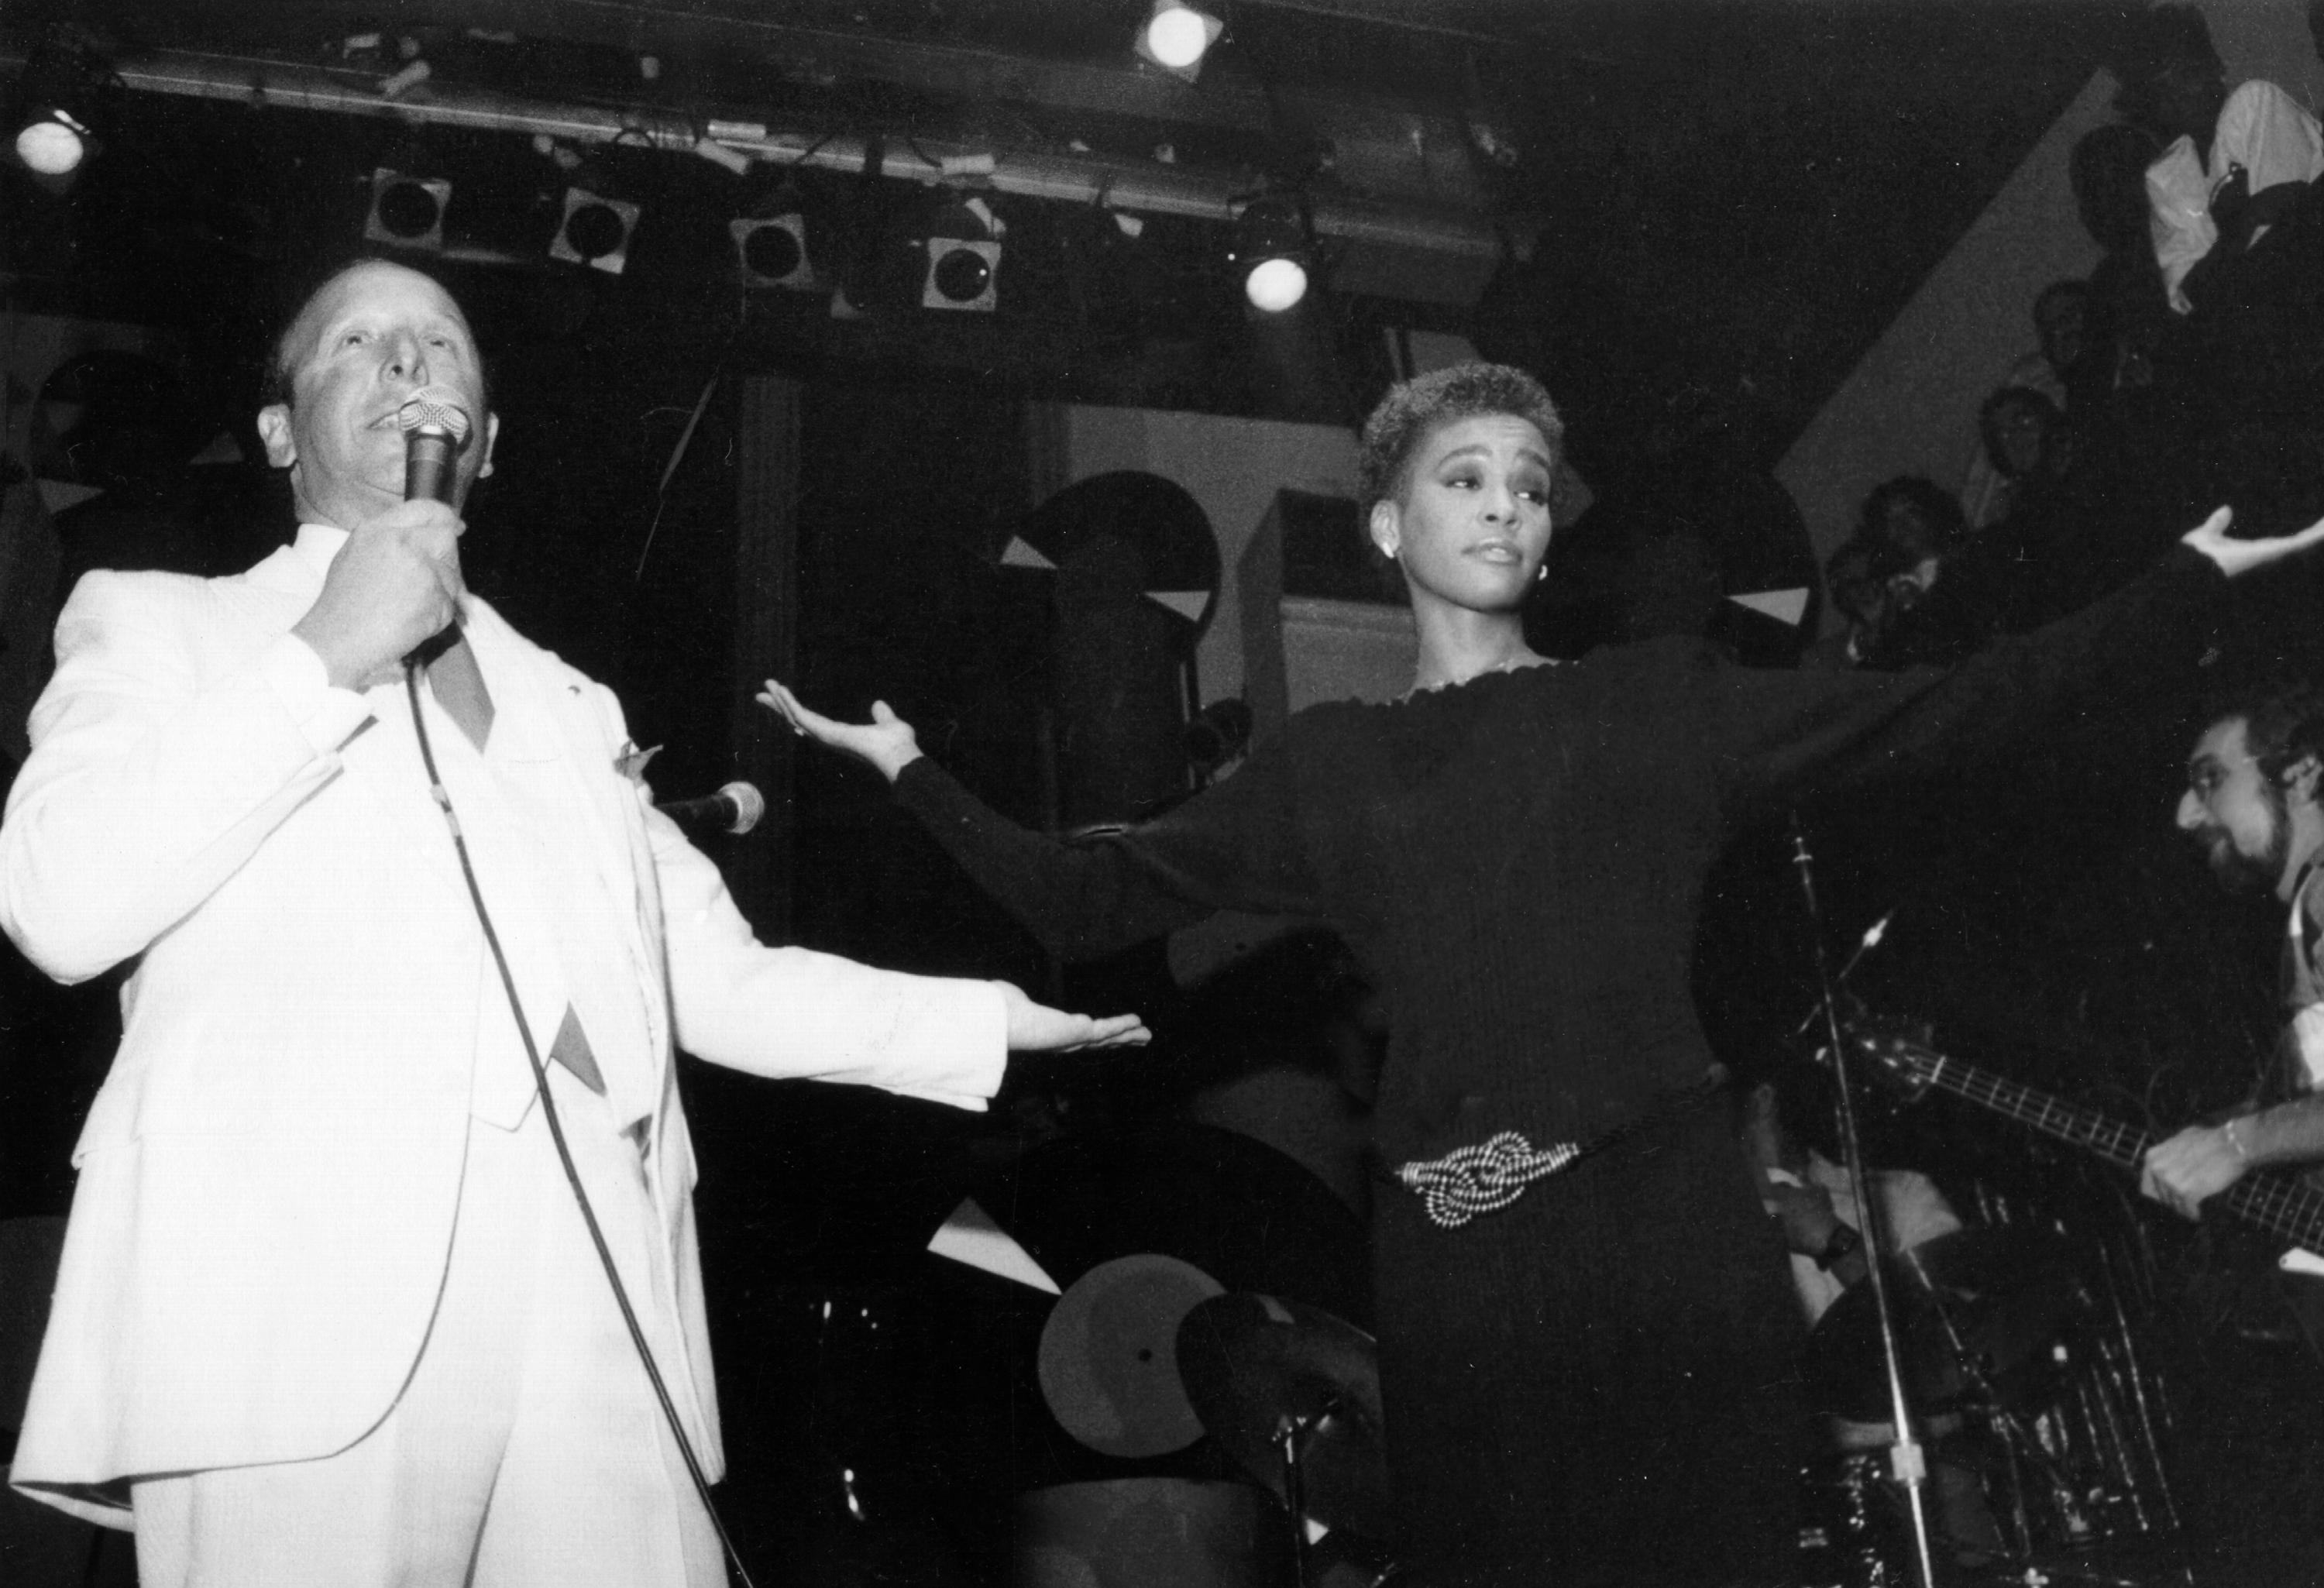 NEW YORK - 1984: Music executive Clive Davis introduces pop singer Whitney Houston in 1984 in New York, New York. (Photo by Michael Ochs Archives/Getty Images)